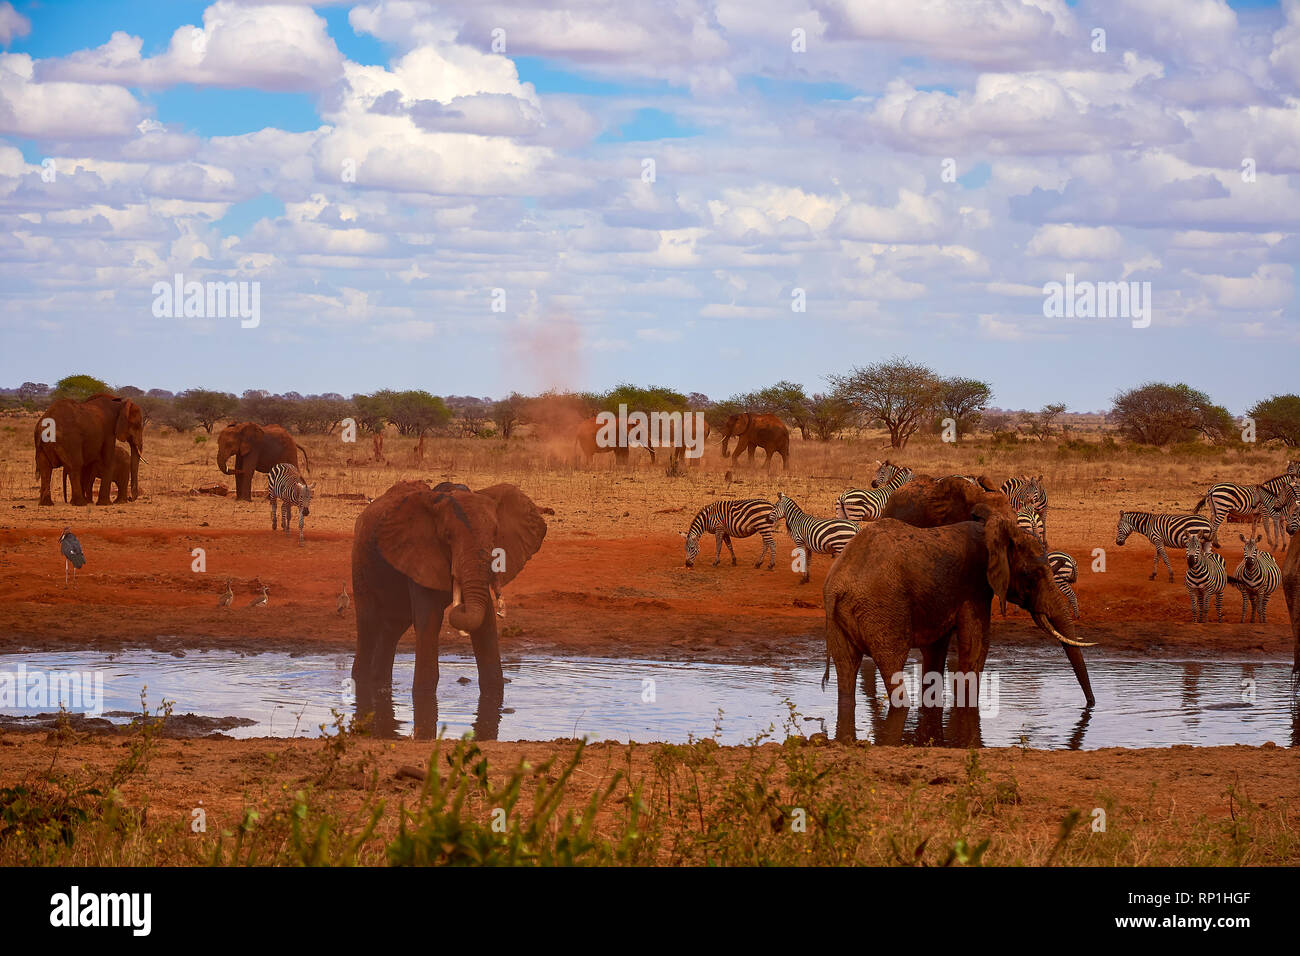 View of a family of elephants and zebras. Water pond in the Tsavo National Park in Kenya, Africa. Blue sky with clouds and red sand. Stock Photo